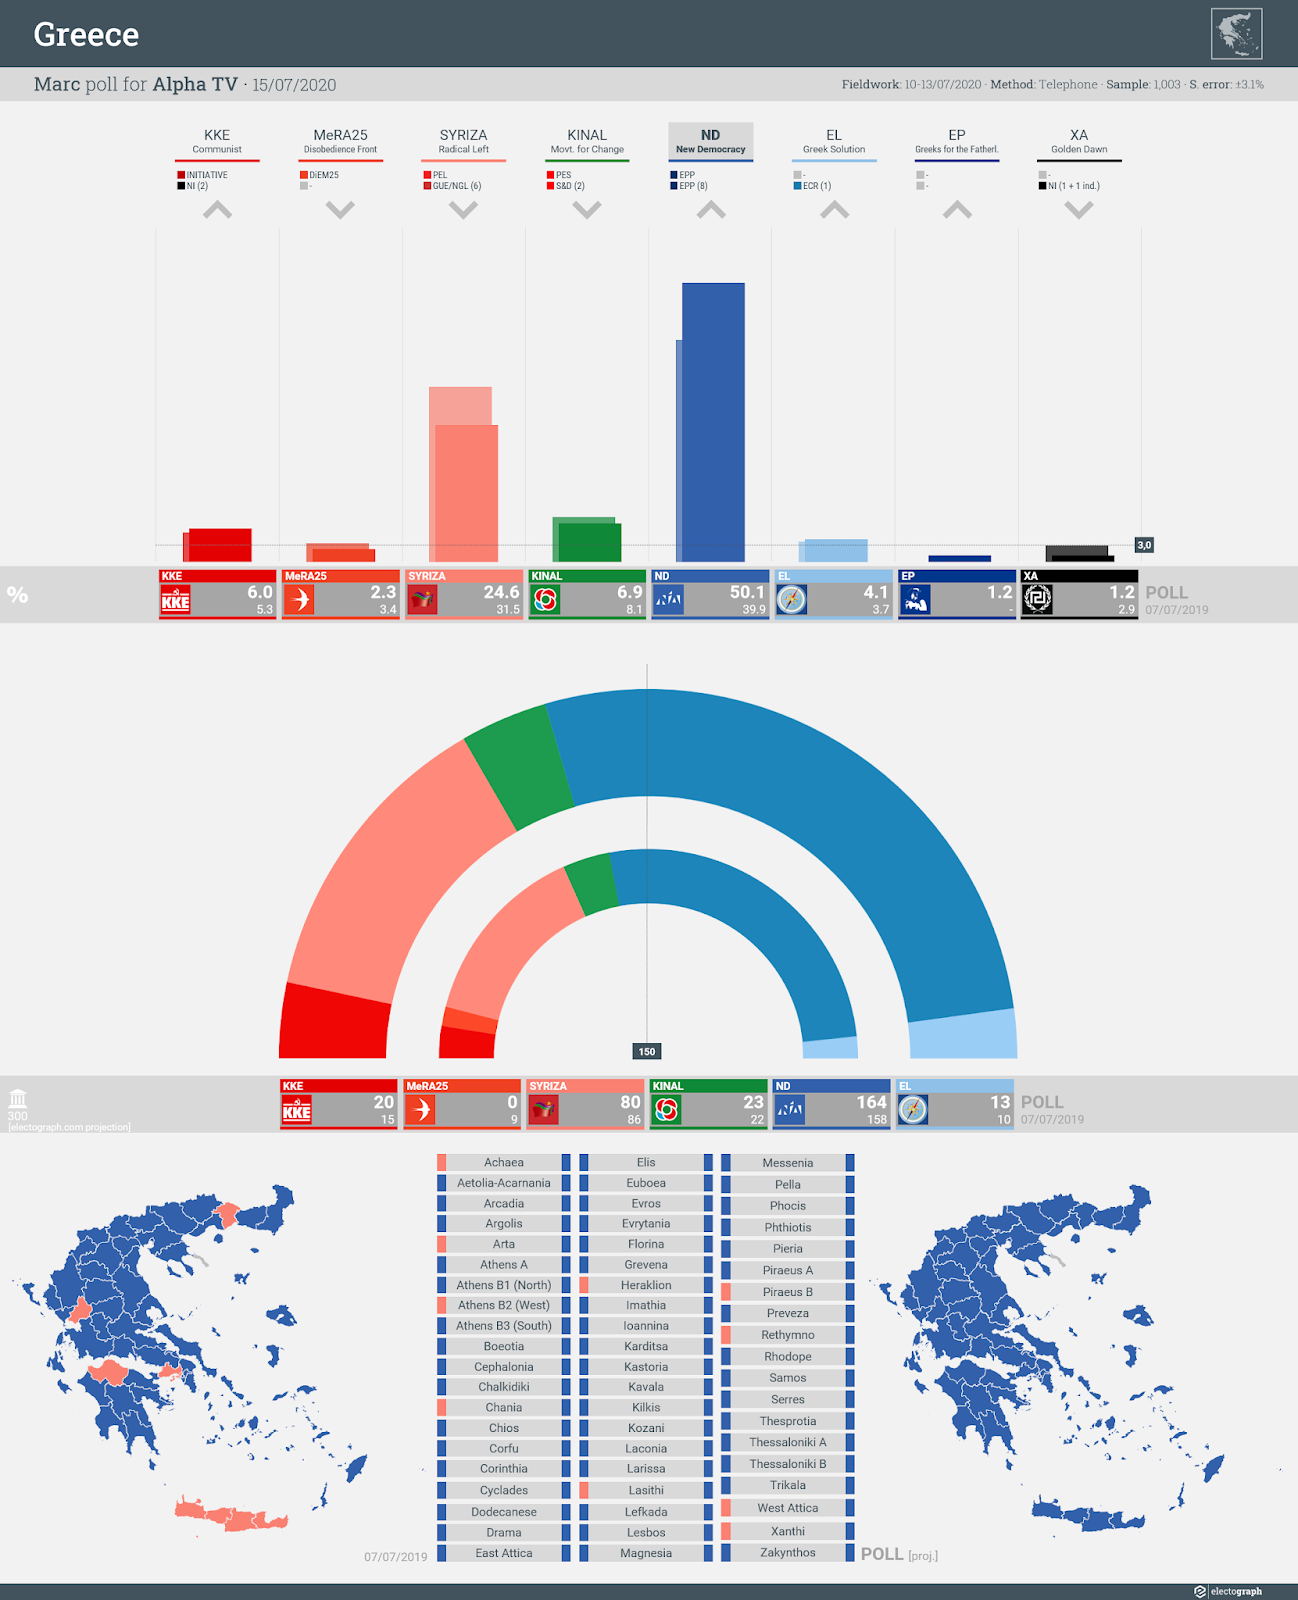 GREECE: Marc poll chart for Alpha TV, 15 July 2020